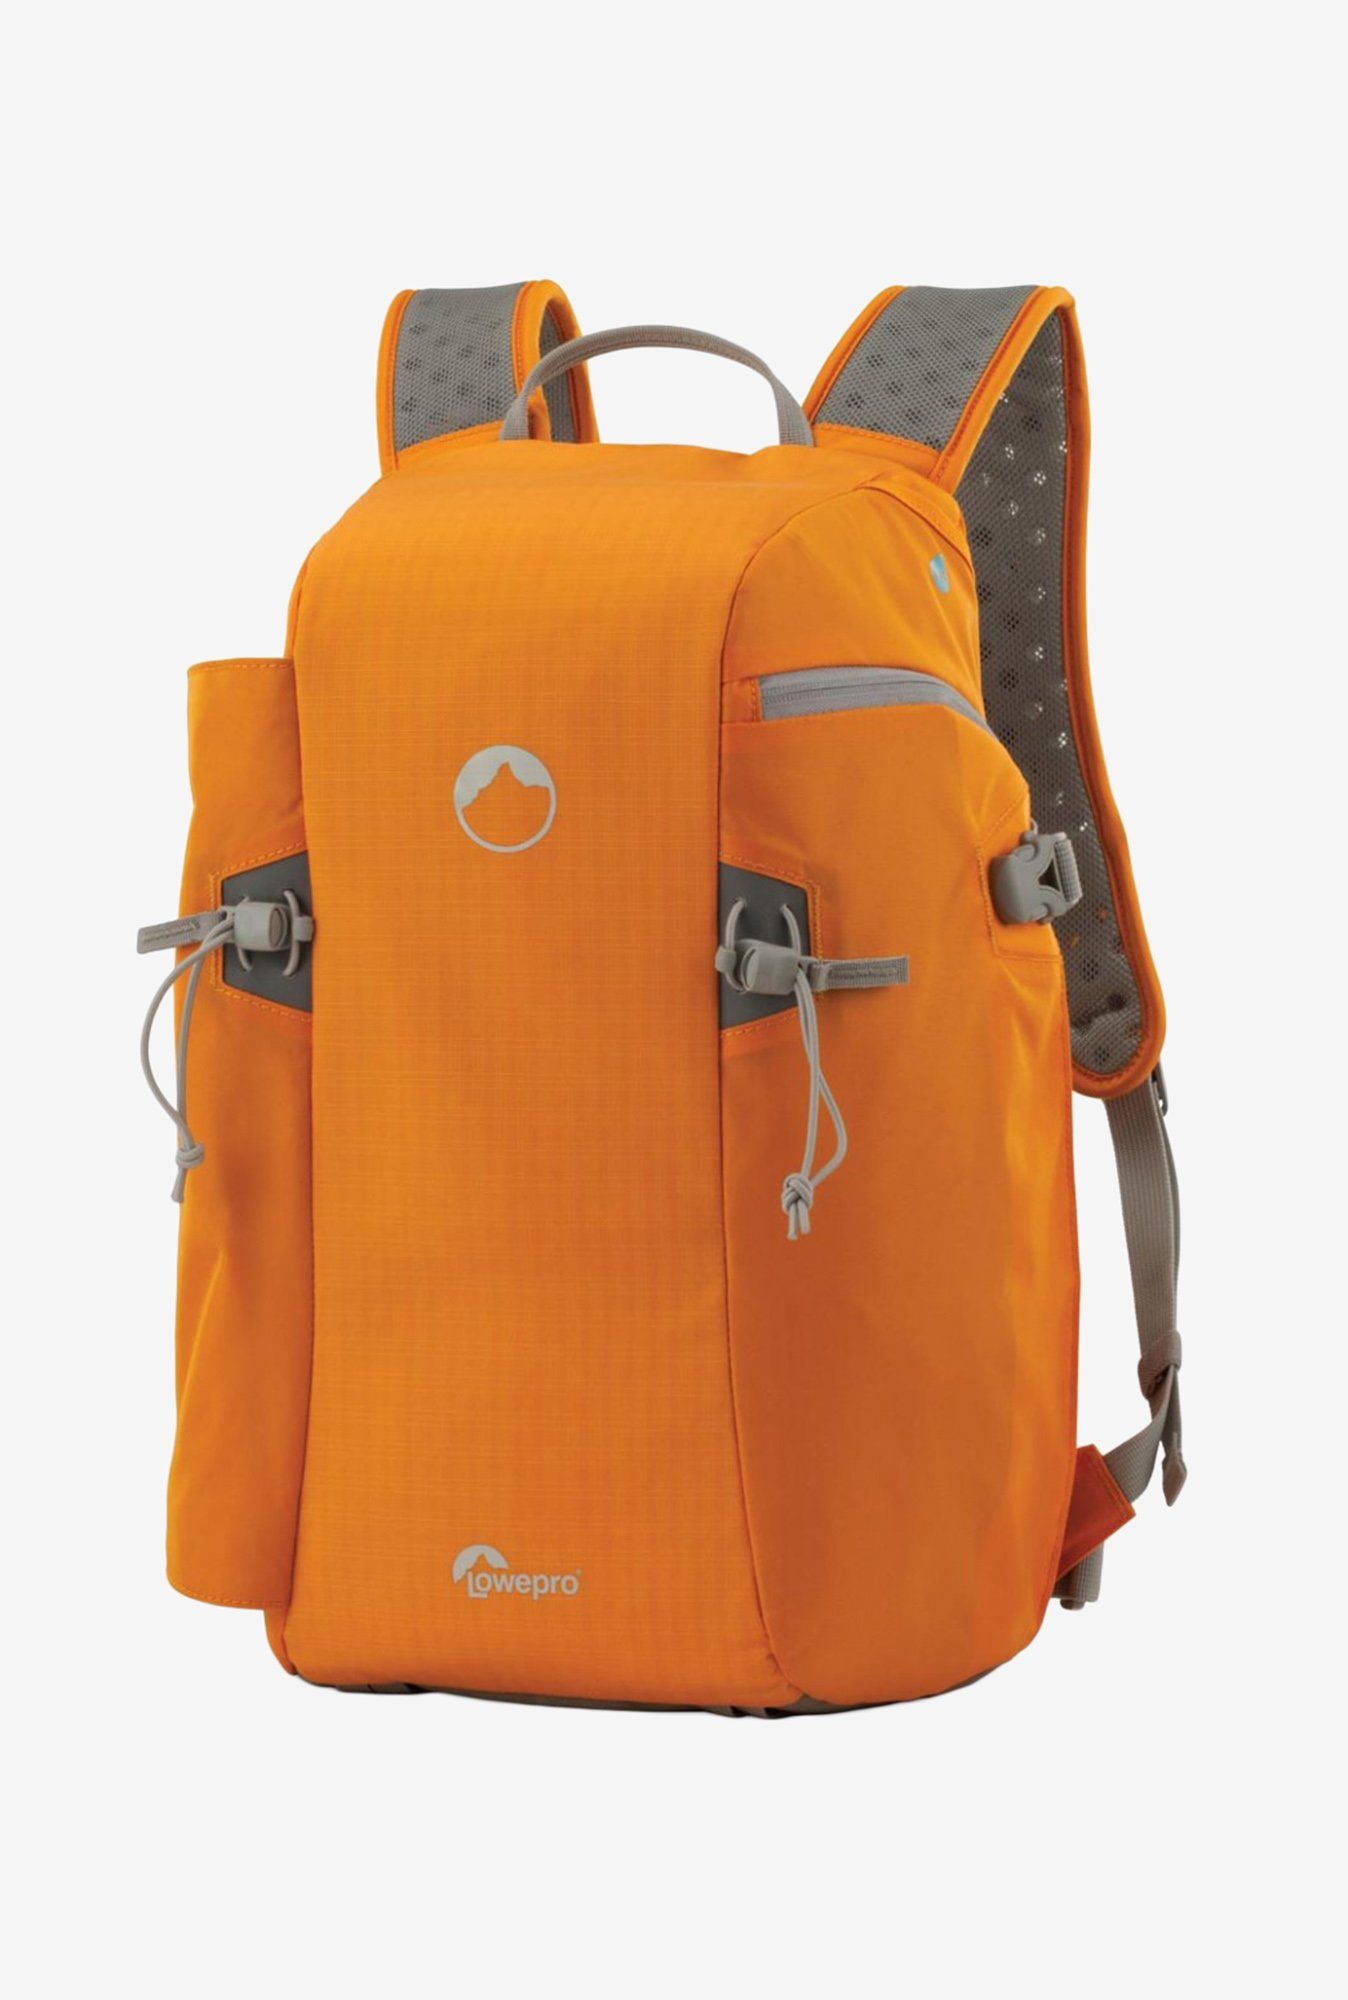 Lowepro Flipside Sport 15L Backpack Orange & Light Grey